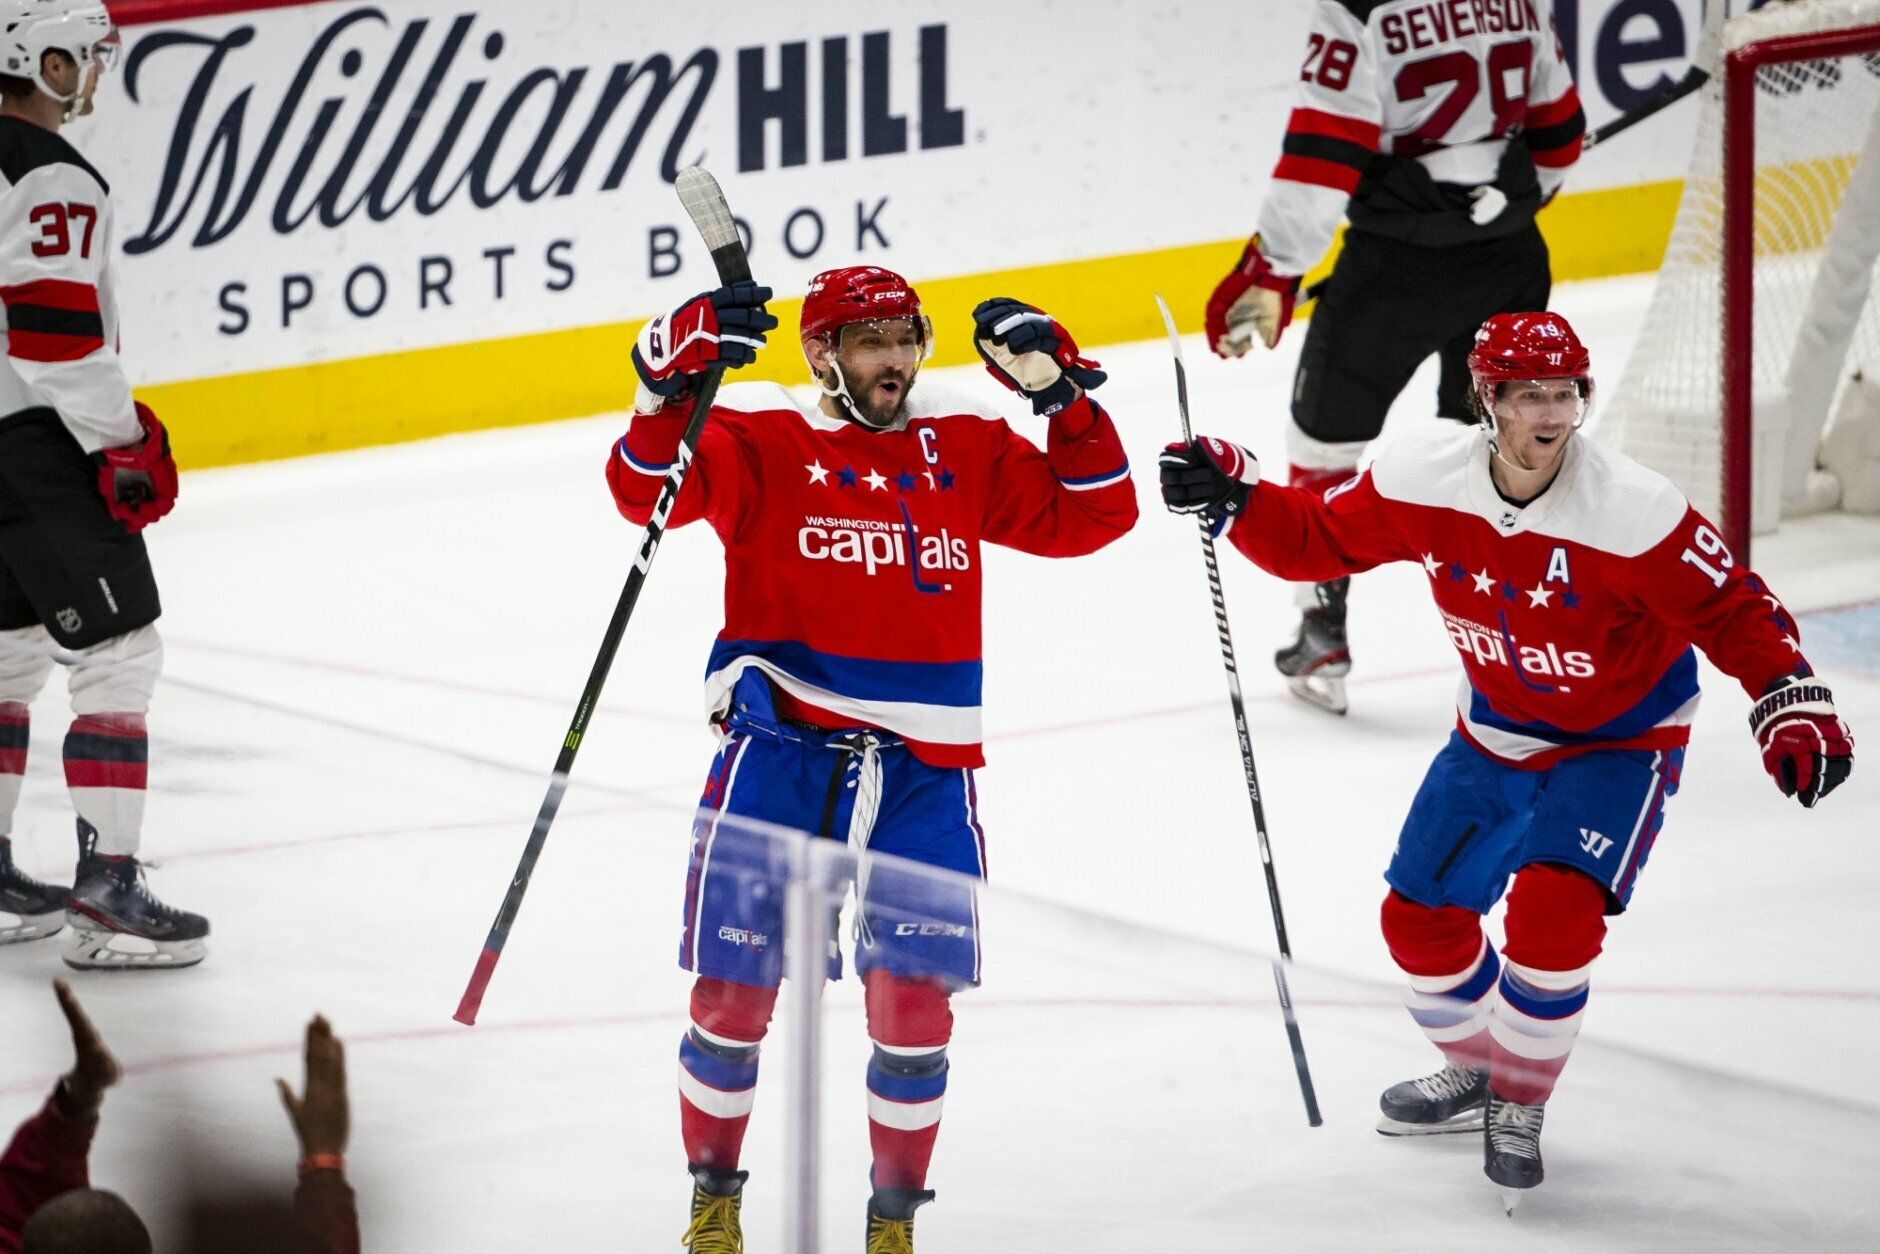 Washington Capitals left wing Alex Ovechkin (8), from Russia, celebrates with center Nicklas Backstrom (19), from Sweden, after scoring his third goal of the night for a hat trick, during the third period of an NHL hockey game against the New Jersey Devils, Thursday, Jan. 16, 2020, in Washington. The Capitals won 5-2. (AP Photo/Al Drago)